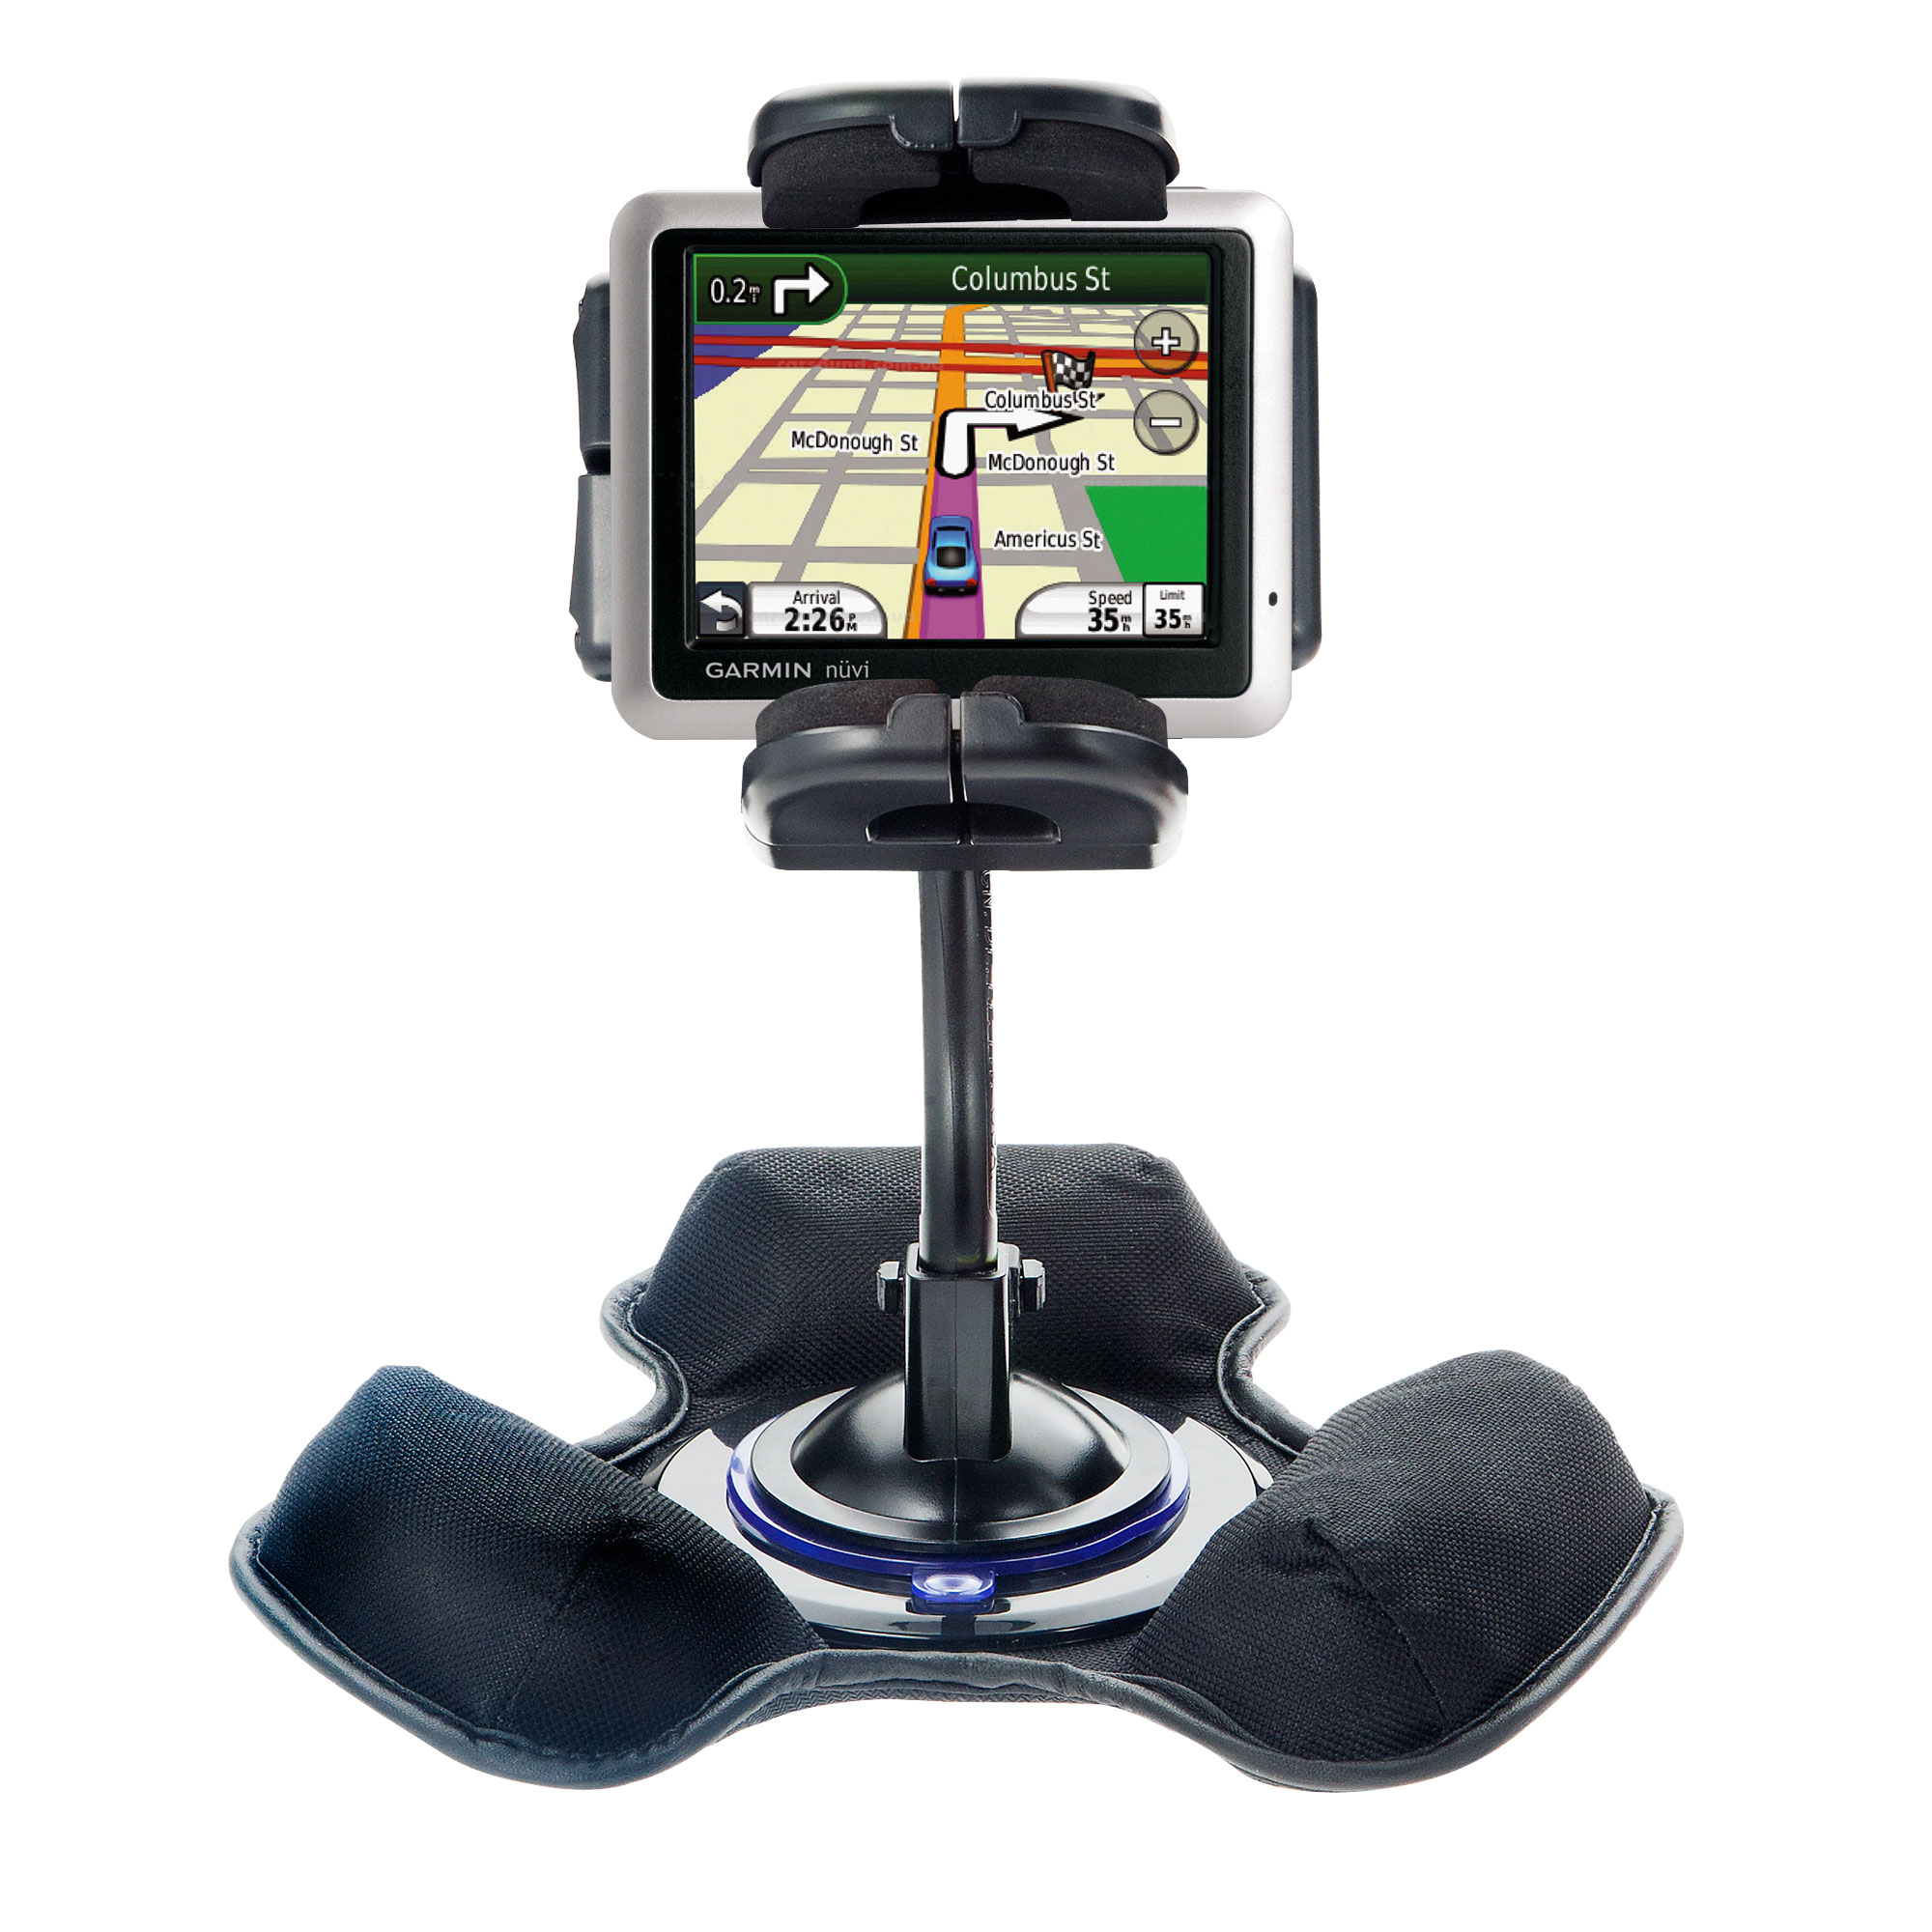 Dash and Windshield Holder compatible with the Garmin Nuvi 1240